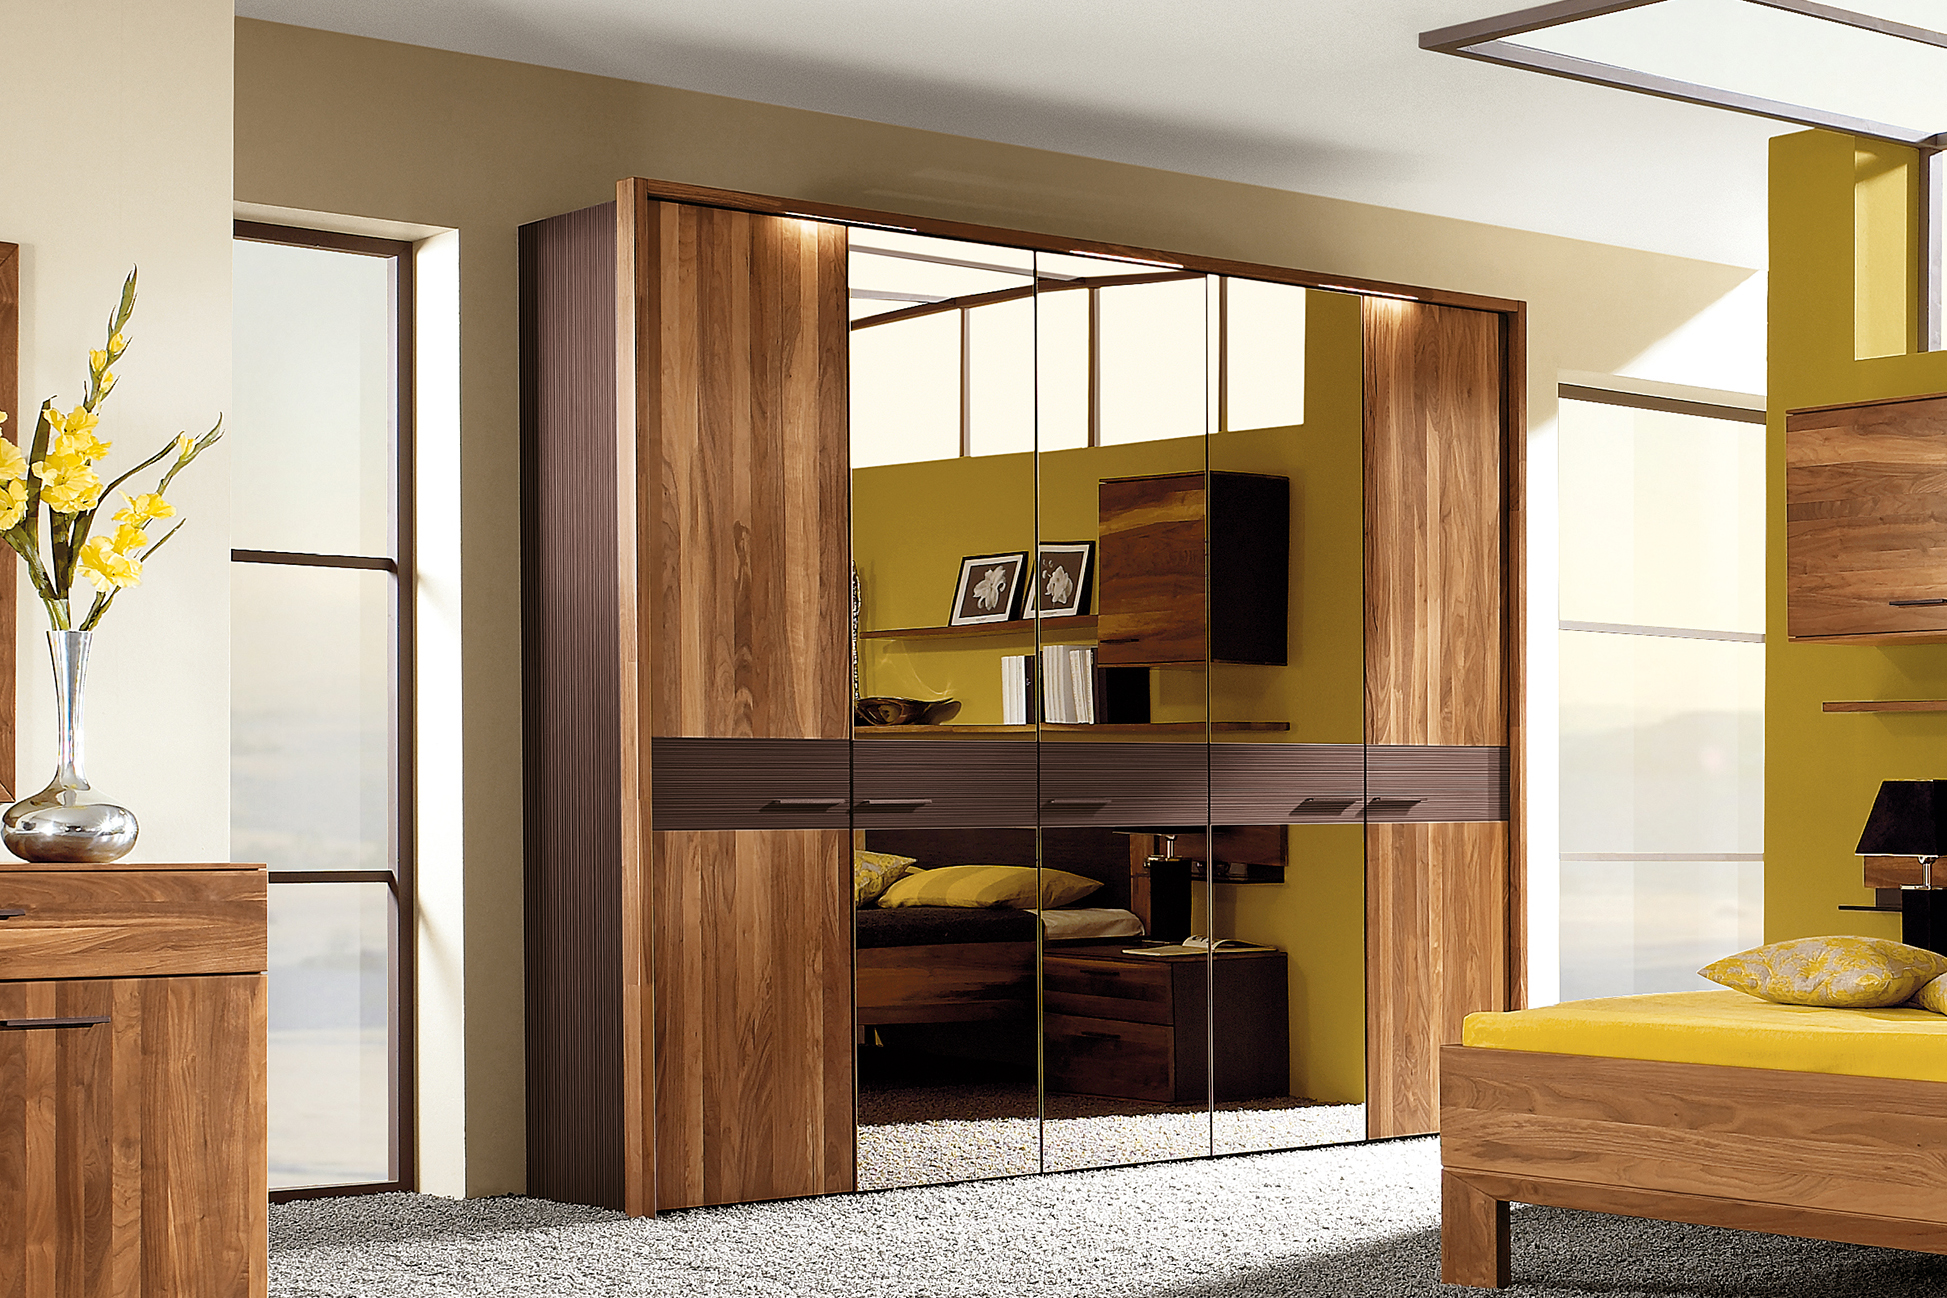 thielemeyer schlafzimmer mali nussbaum massiv m bel letz ihr online shop. Black Bedroom Furniture Sets. Home Design Ideas